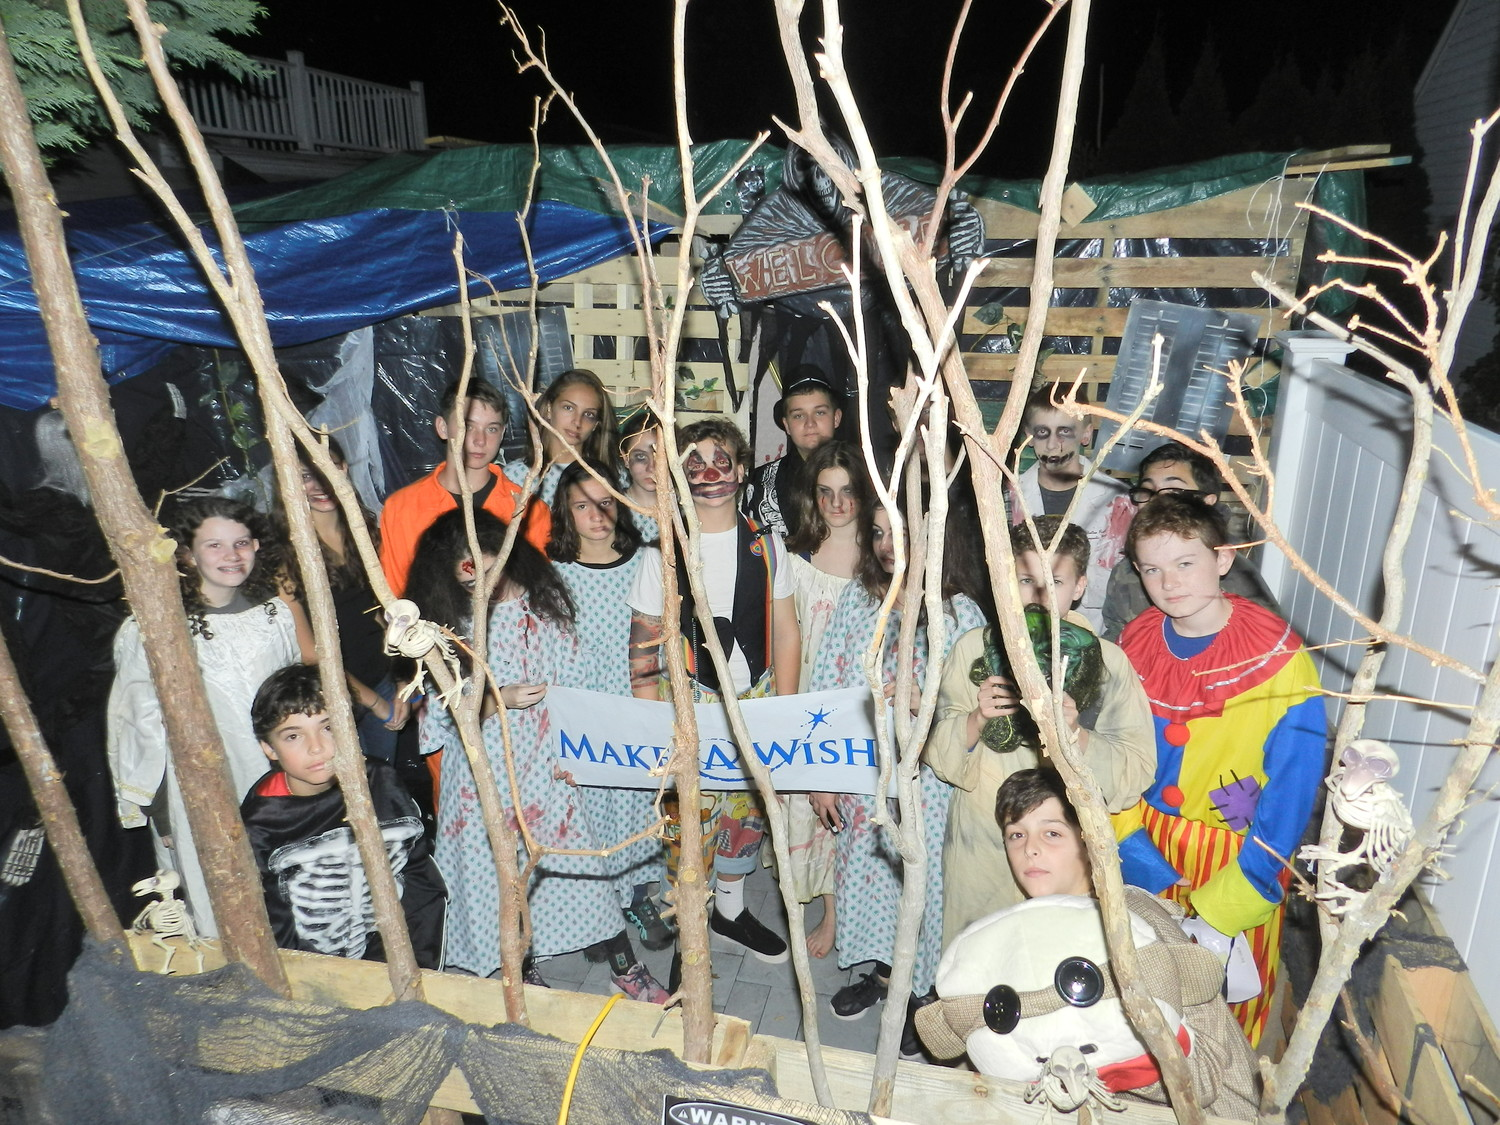 Gavin Lacy, center, dressed as a killer clown, gets a little help from his friends to put up his homemade haunted house.